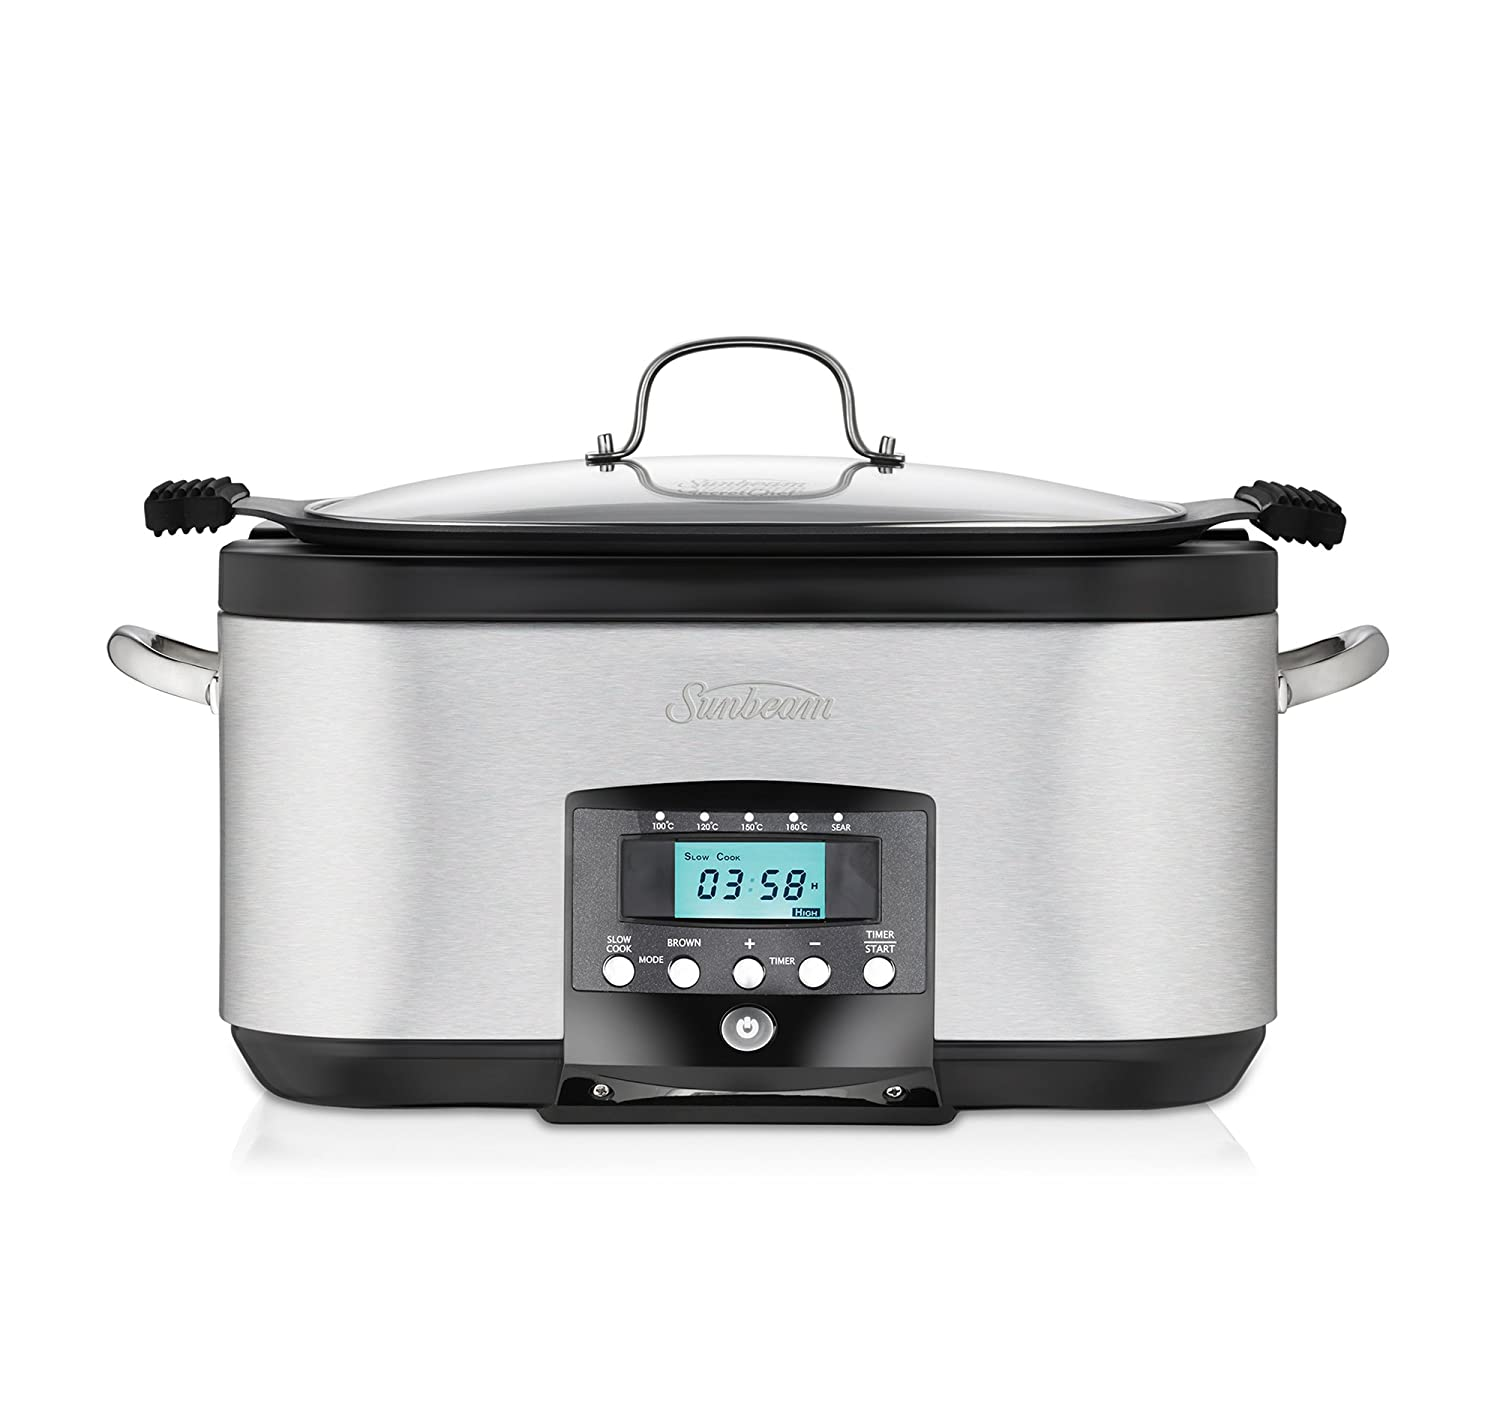 Sunbeam 5.5L Secretchef Electronic Sear and Slow Cooker